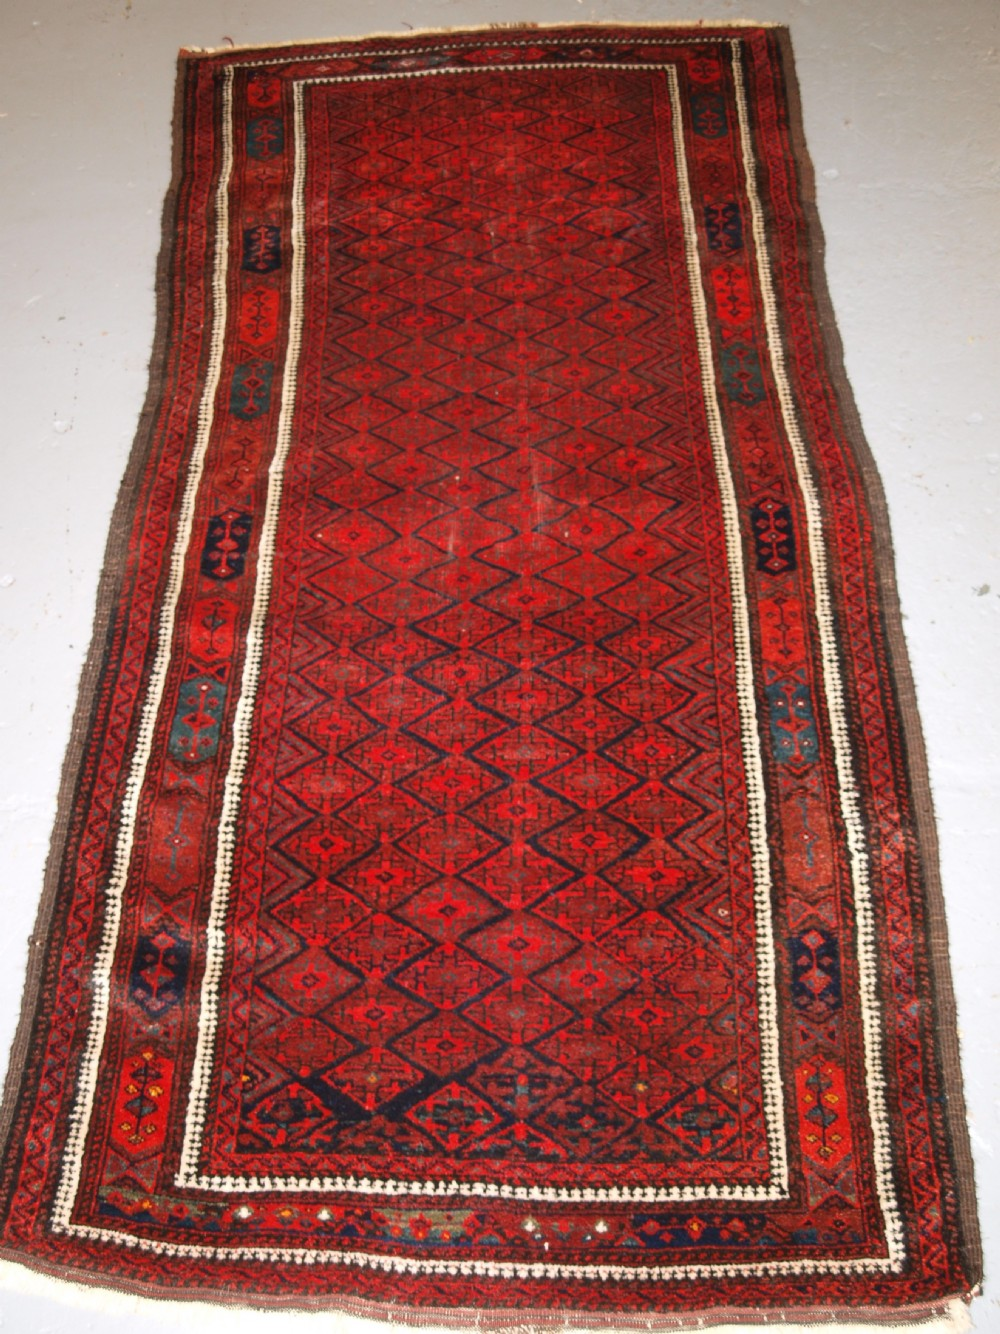 antique baluch rug with fine diamond lattice design interesting border circa 1900